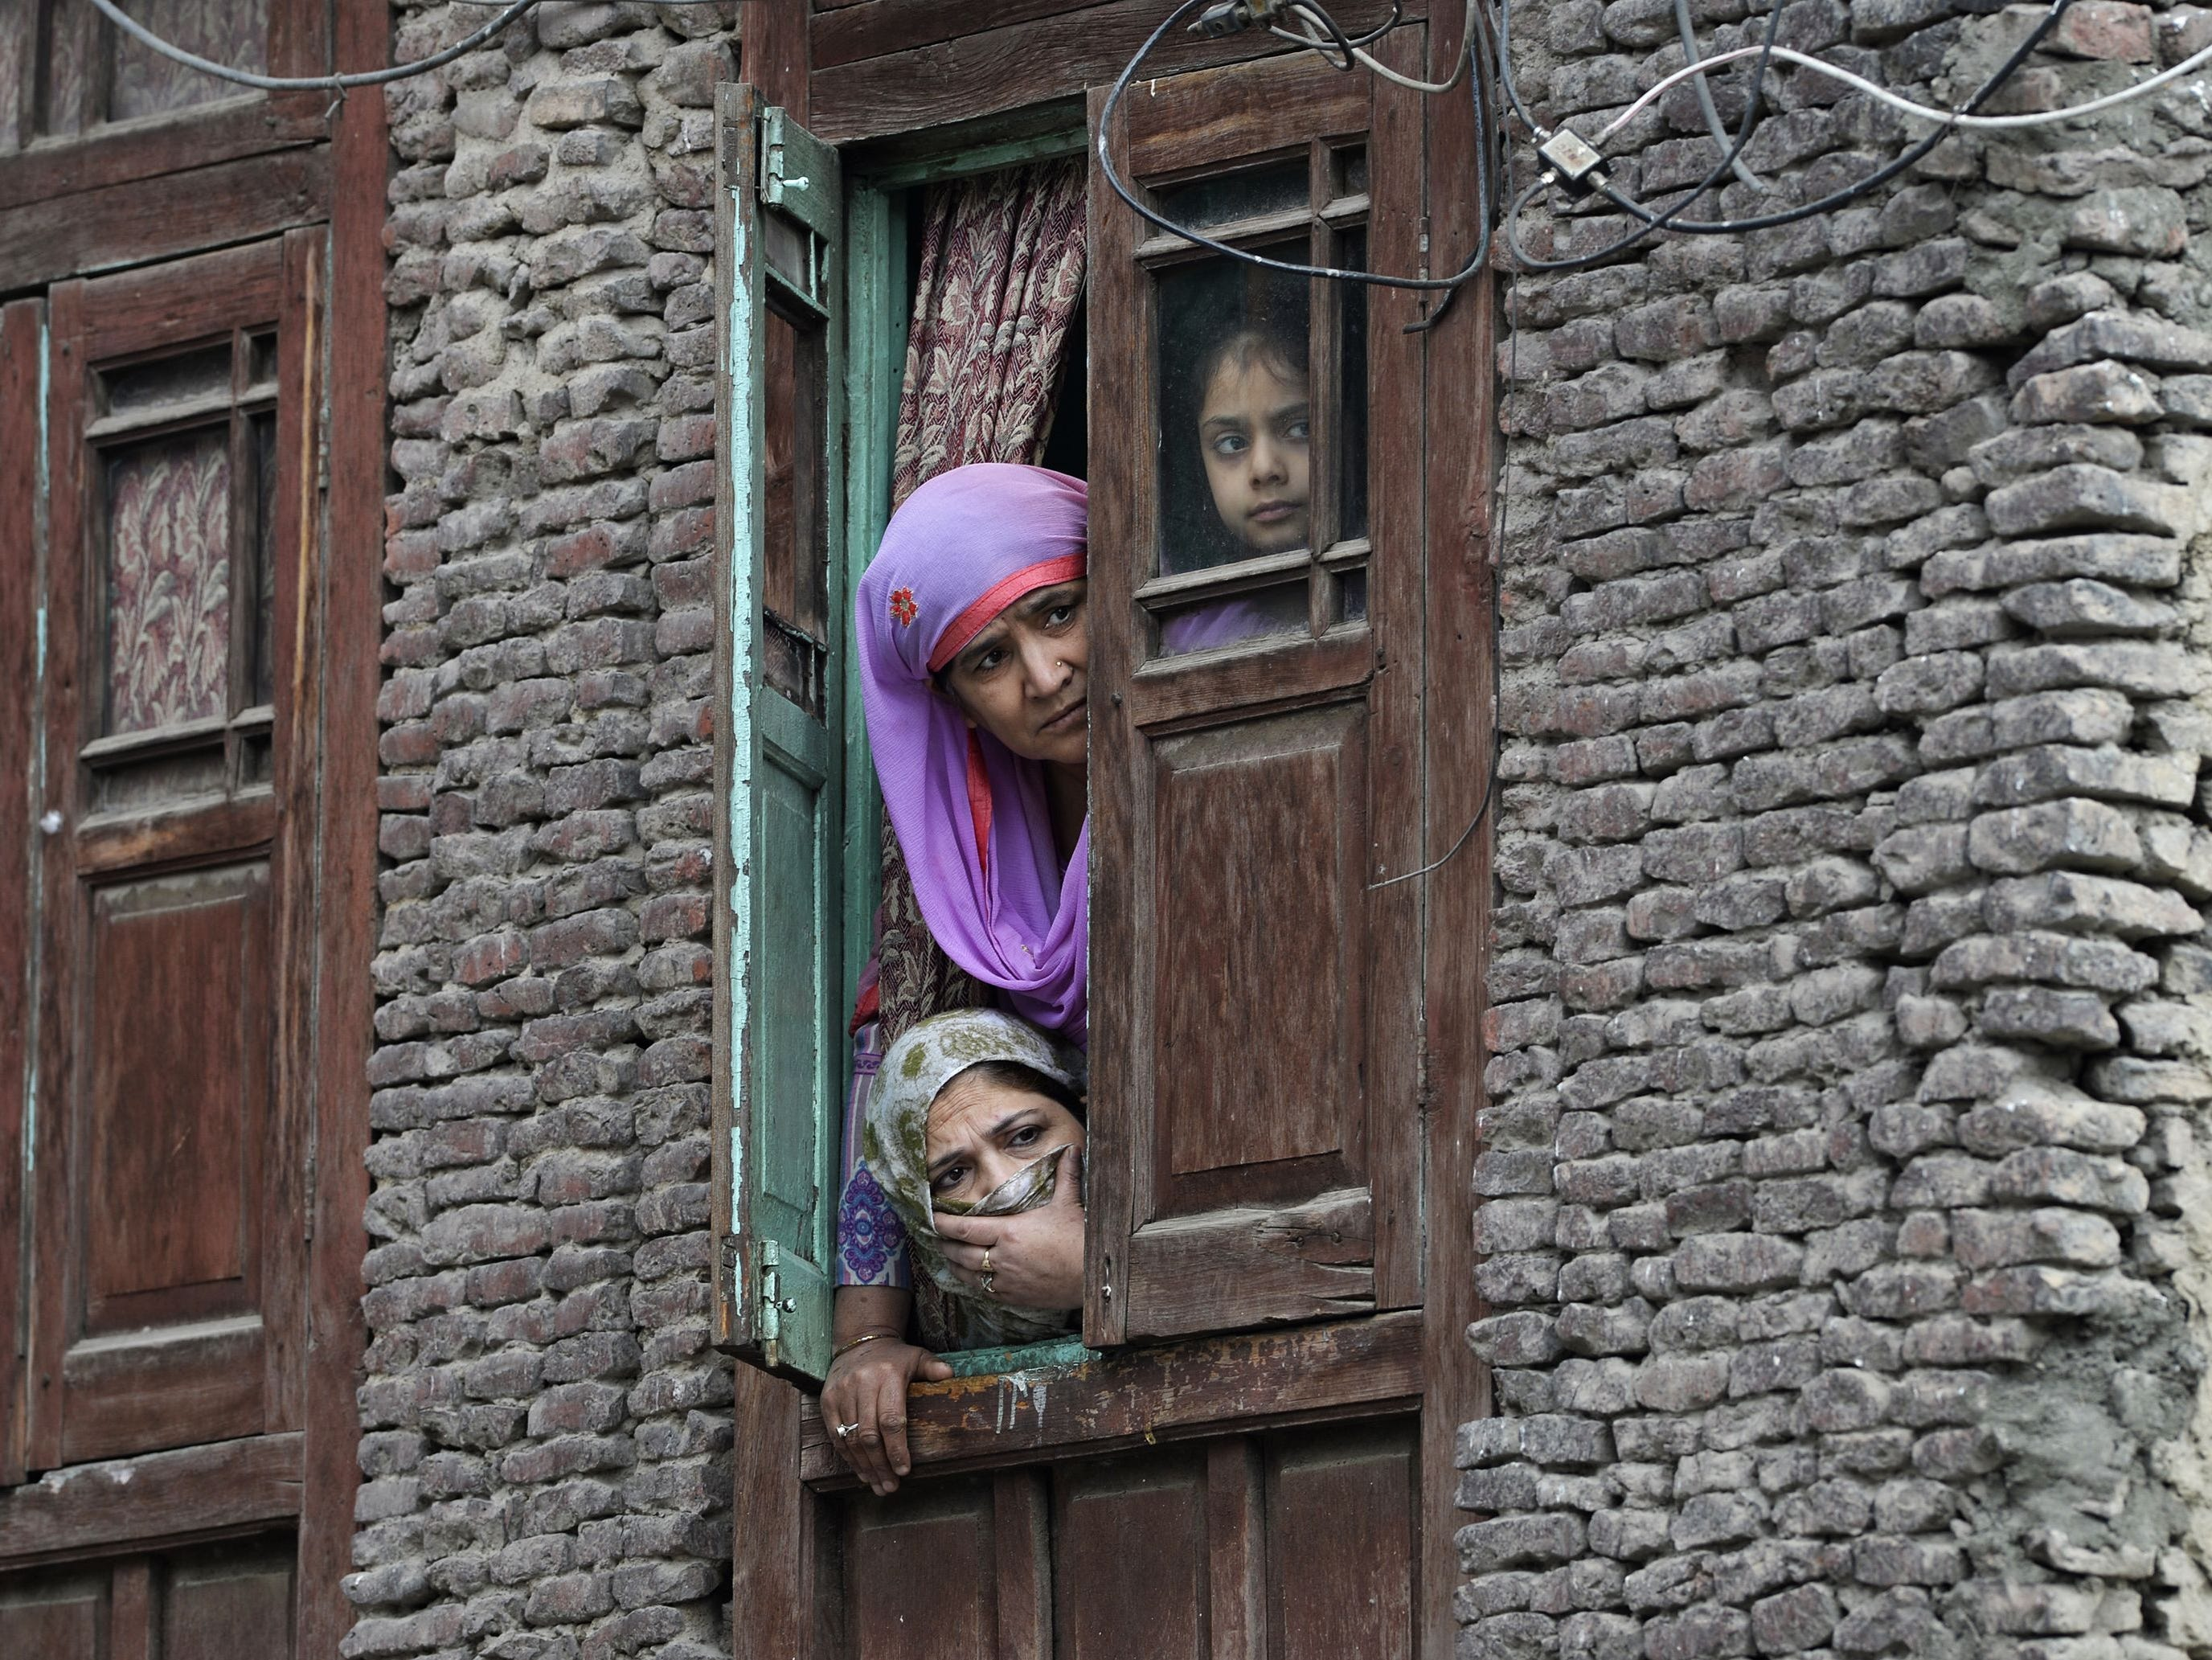 Residents look out from a window near the site of a gun battle between suspected militants and Indian government forces in downtown Srinagar on Oct. 17, 2018. Two suspected militants and one security force personnel were killed, officials said.